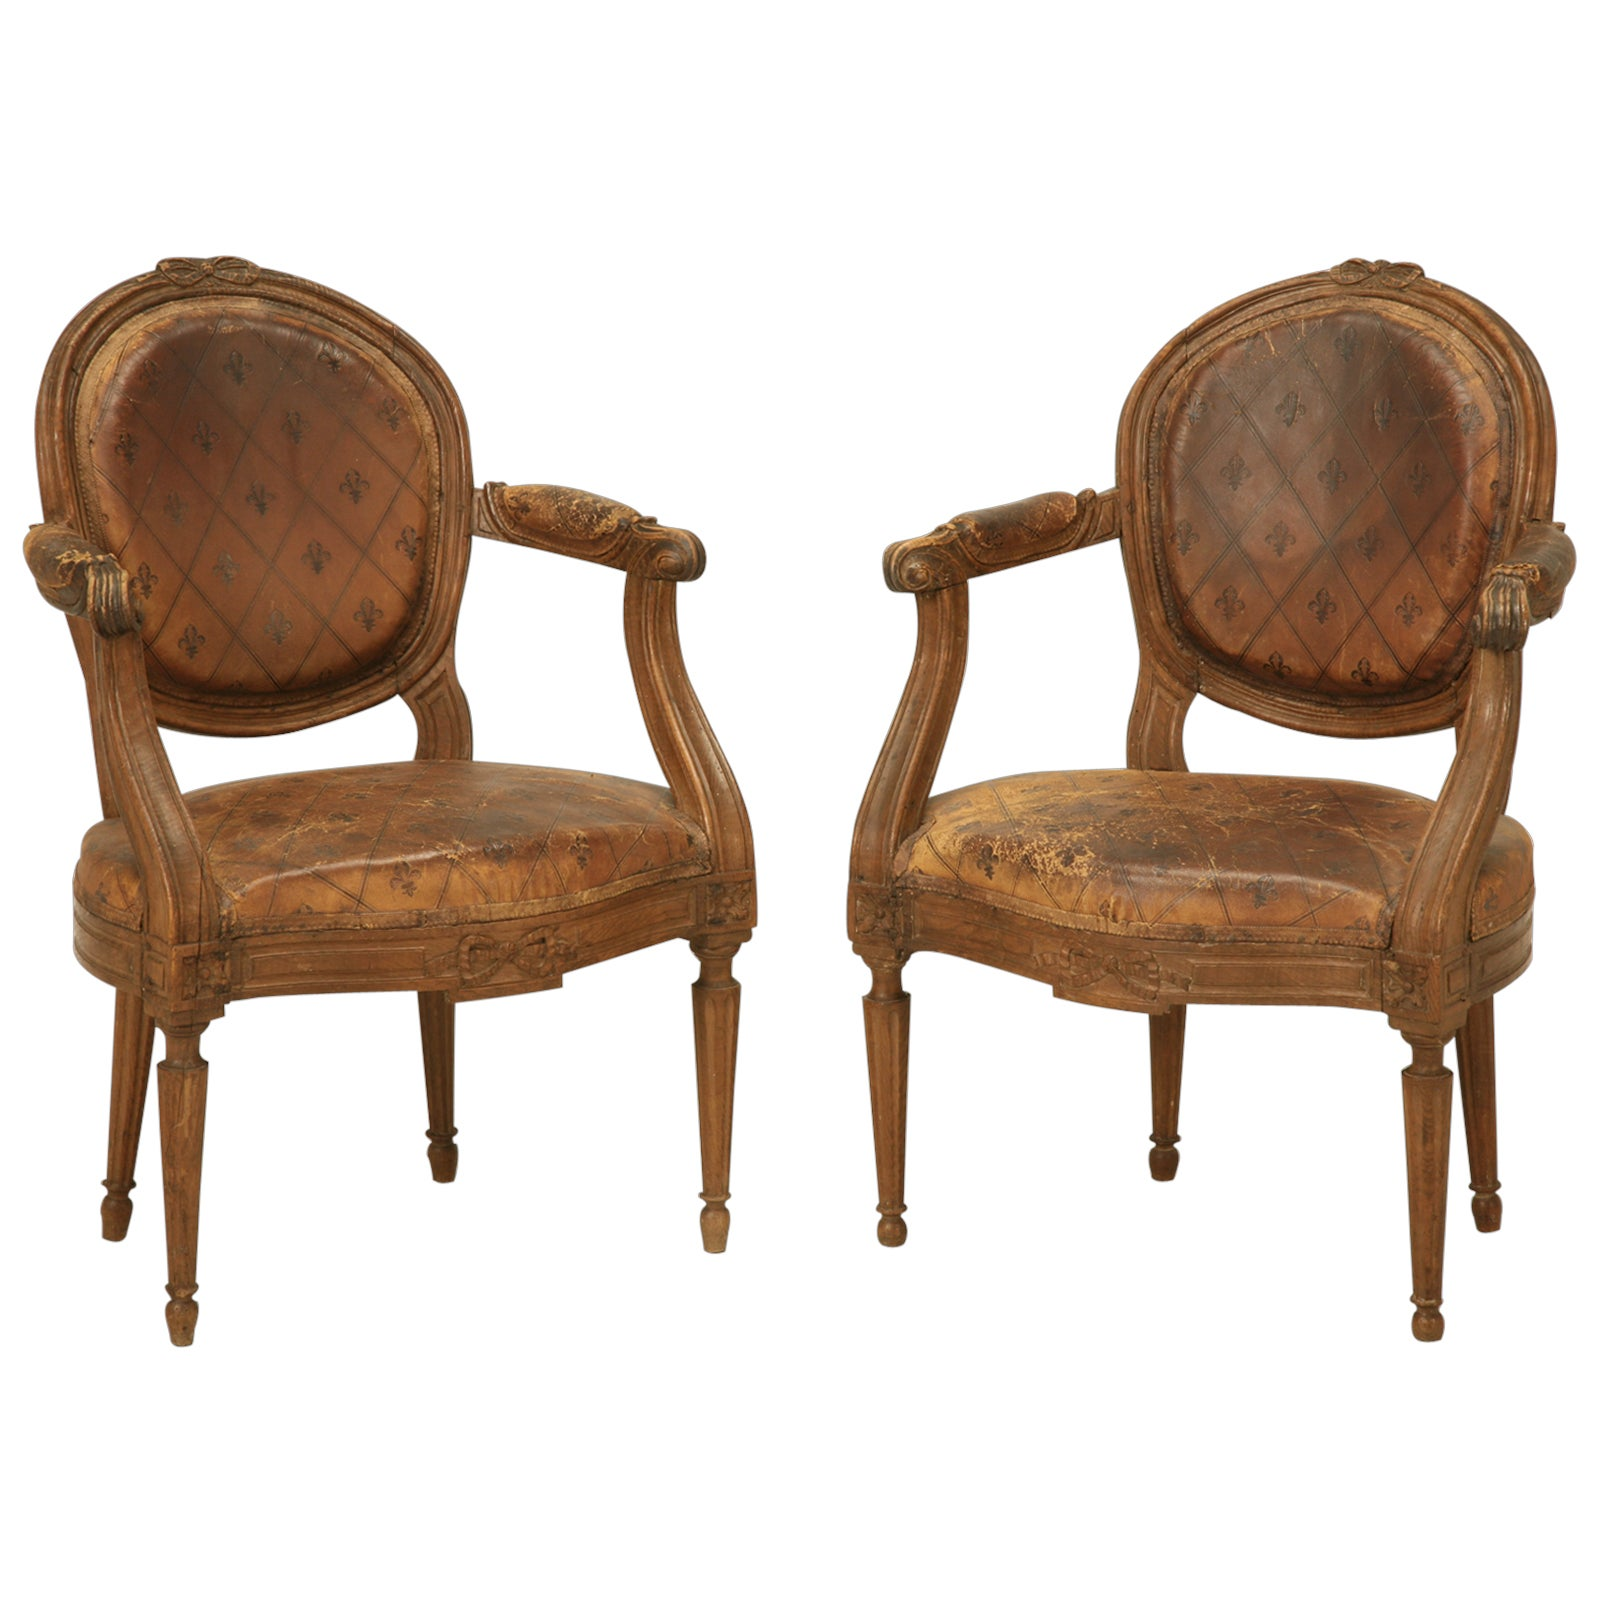 French Louis XVI Style Armchairs in Original Leather